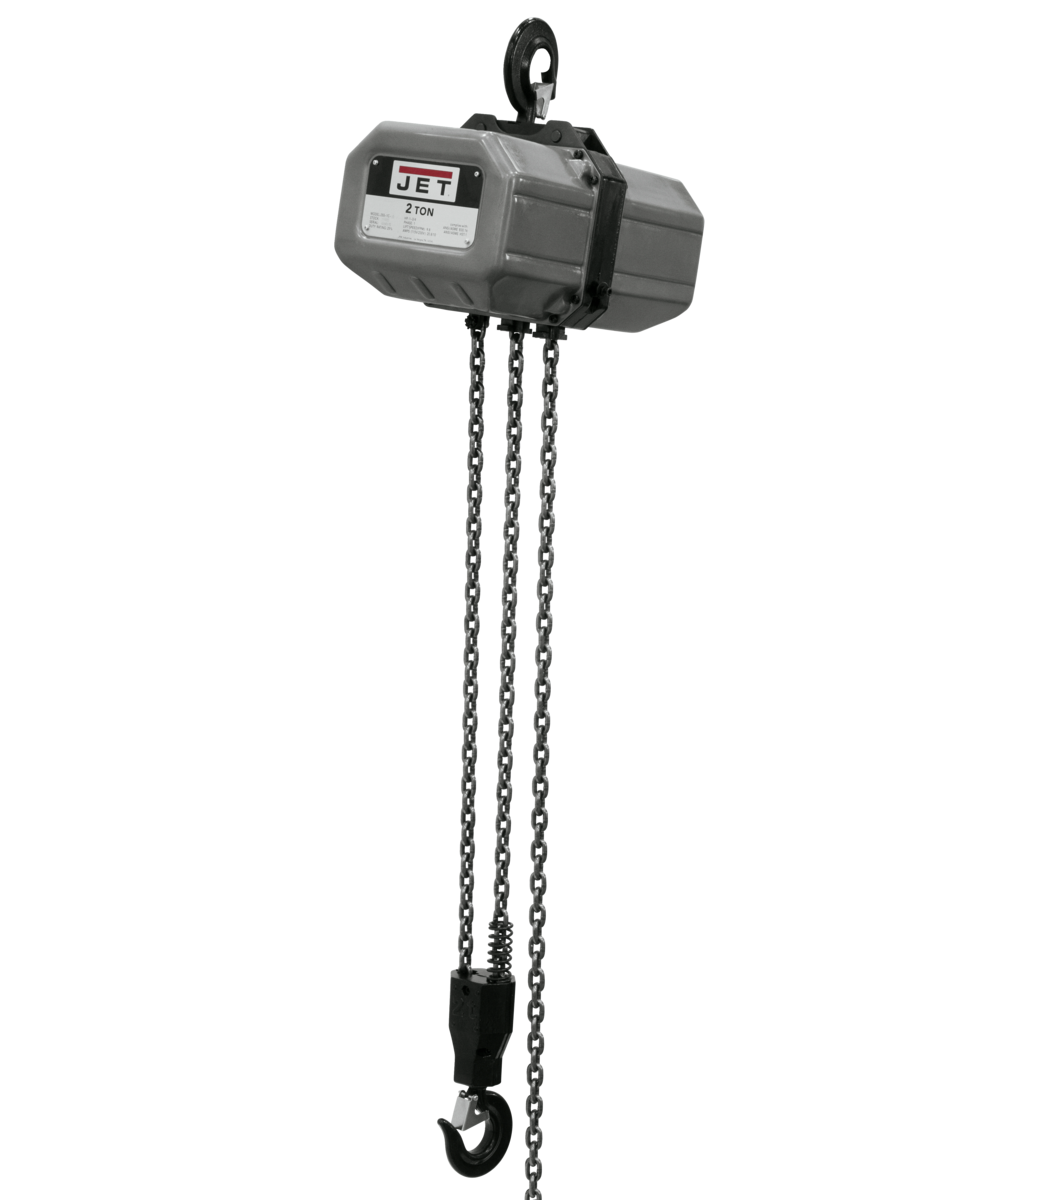 2SS-3C-15, 2-Ton Electric Chain Hoist 3-Phase 15' Lift